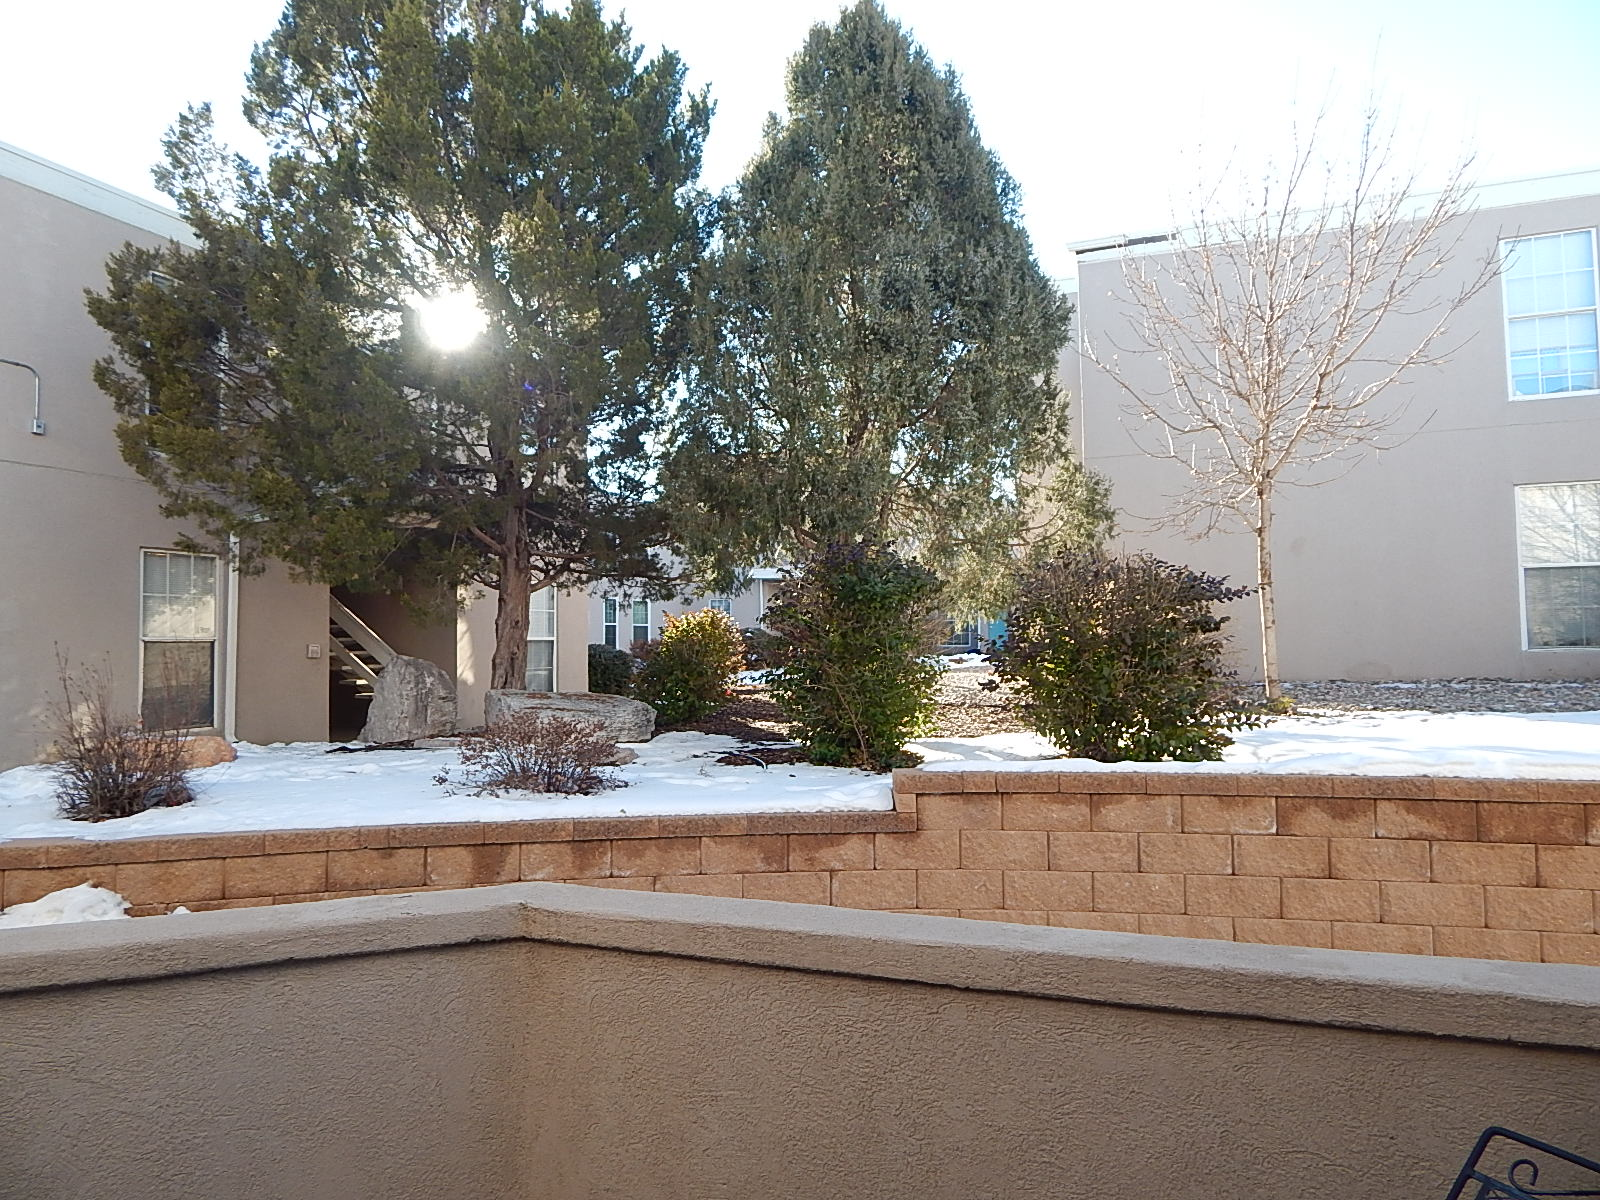 Remodeled 2 2 1 Townhome Listed At 69 9k Colorado